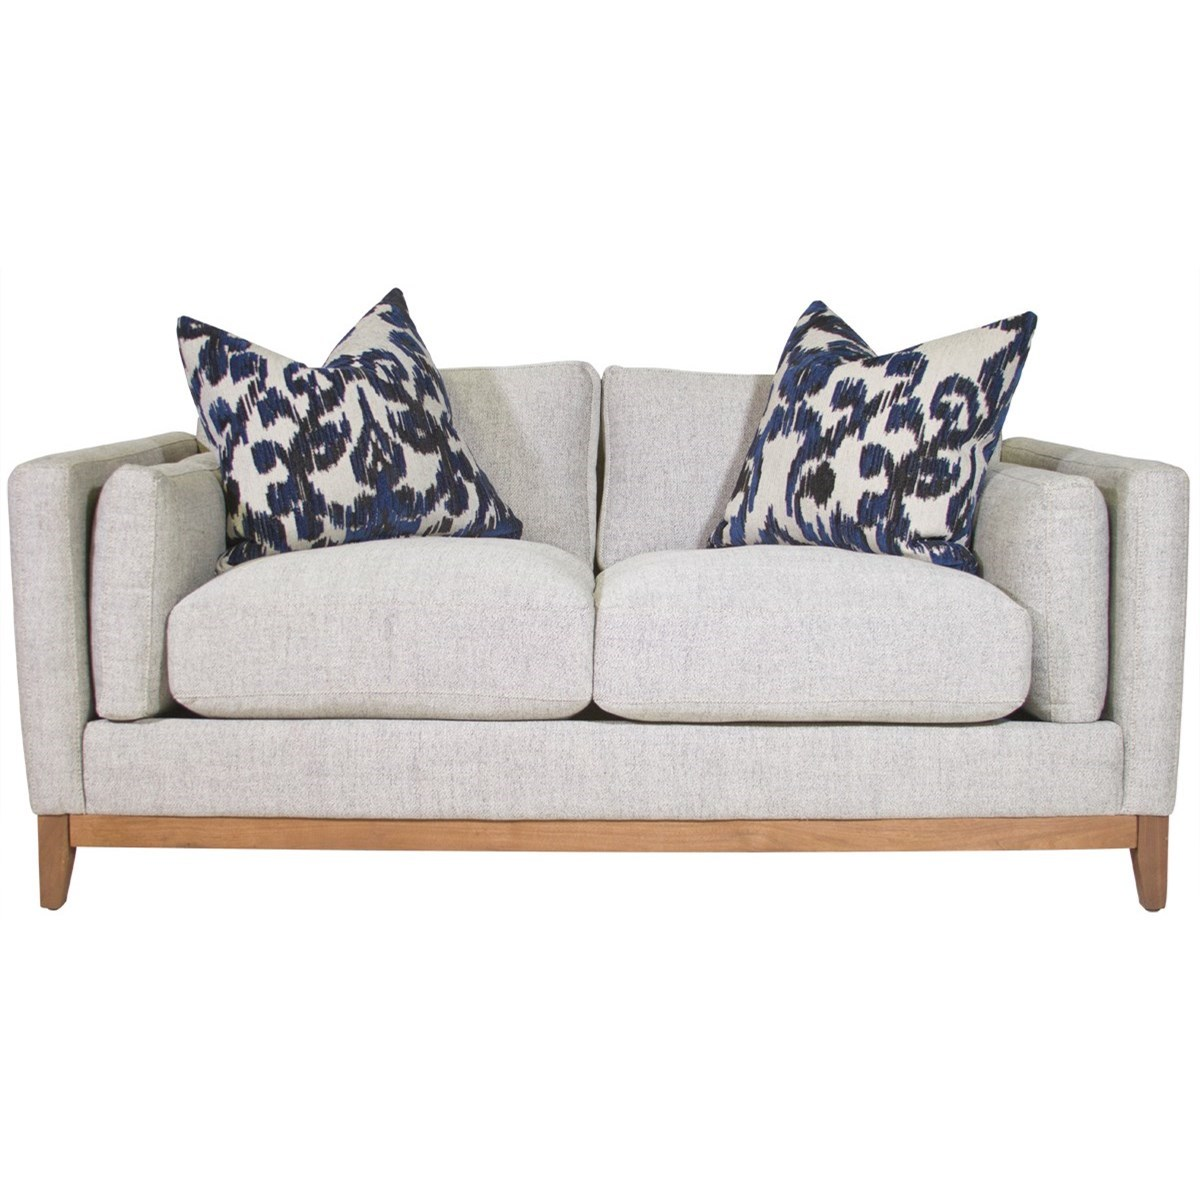 Beau Jonathan Louis Kelsey Condo Sofa   Item Number: 34760 Deauville Stone